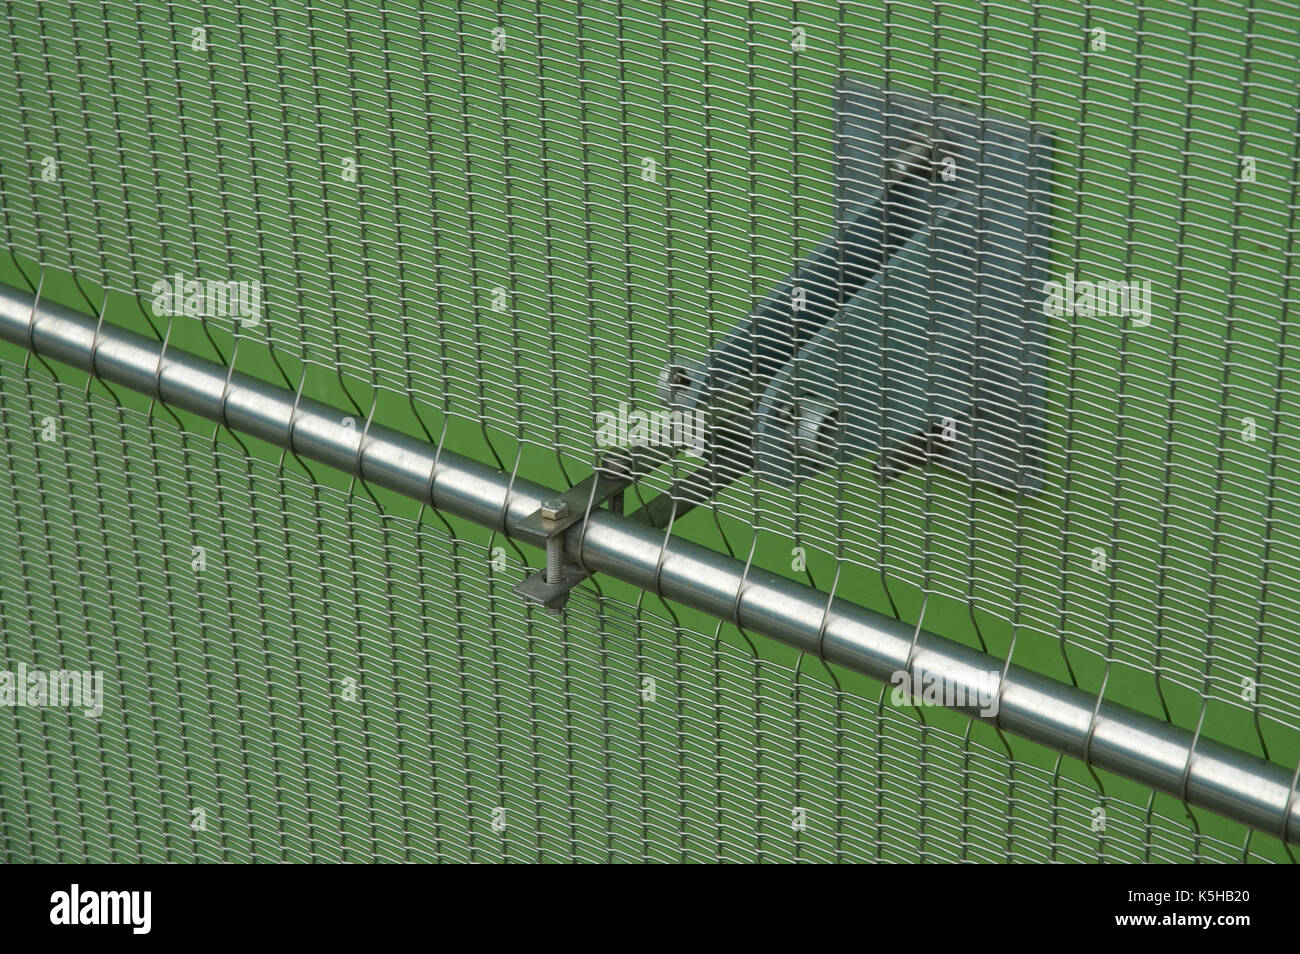 fixation of a steel mesh at a facade - Stock Image